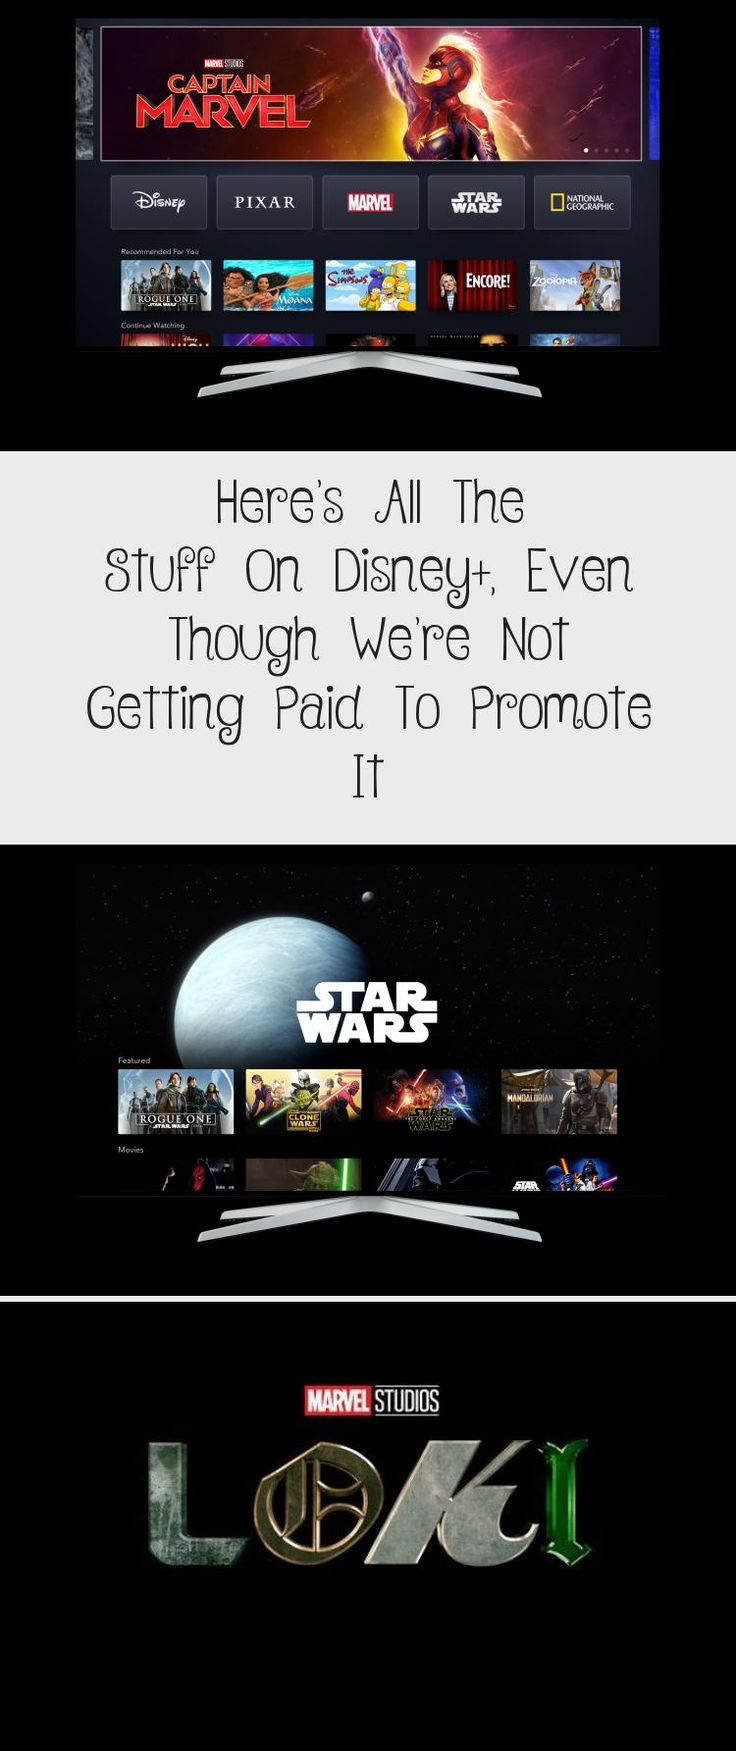 Disney is entering the streaming market in a major way